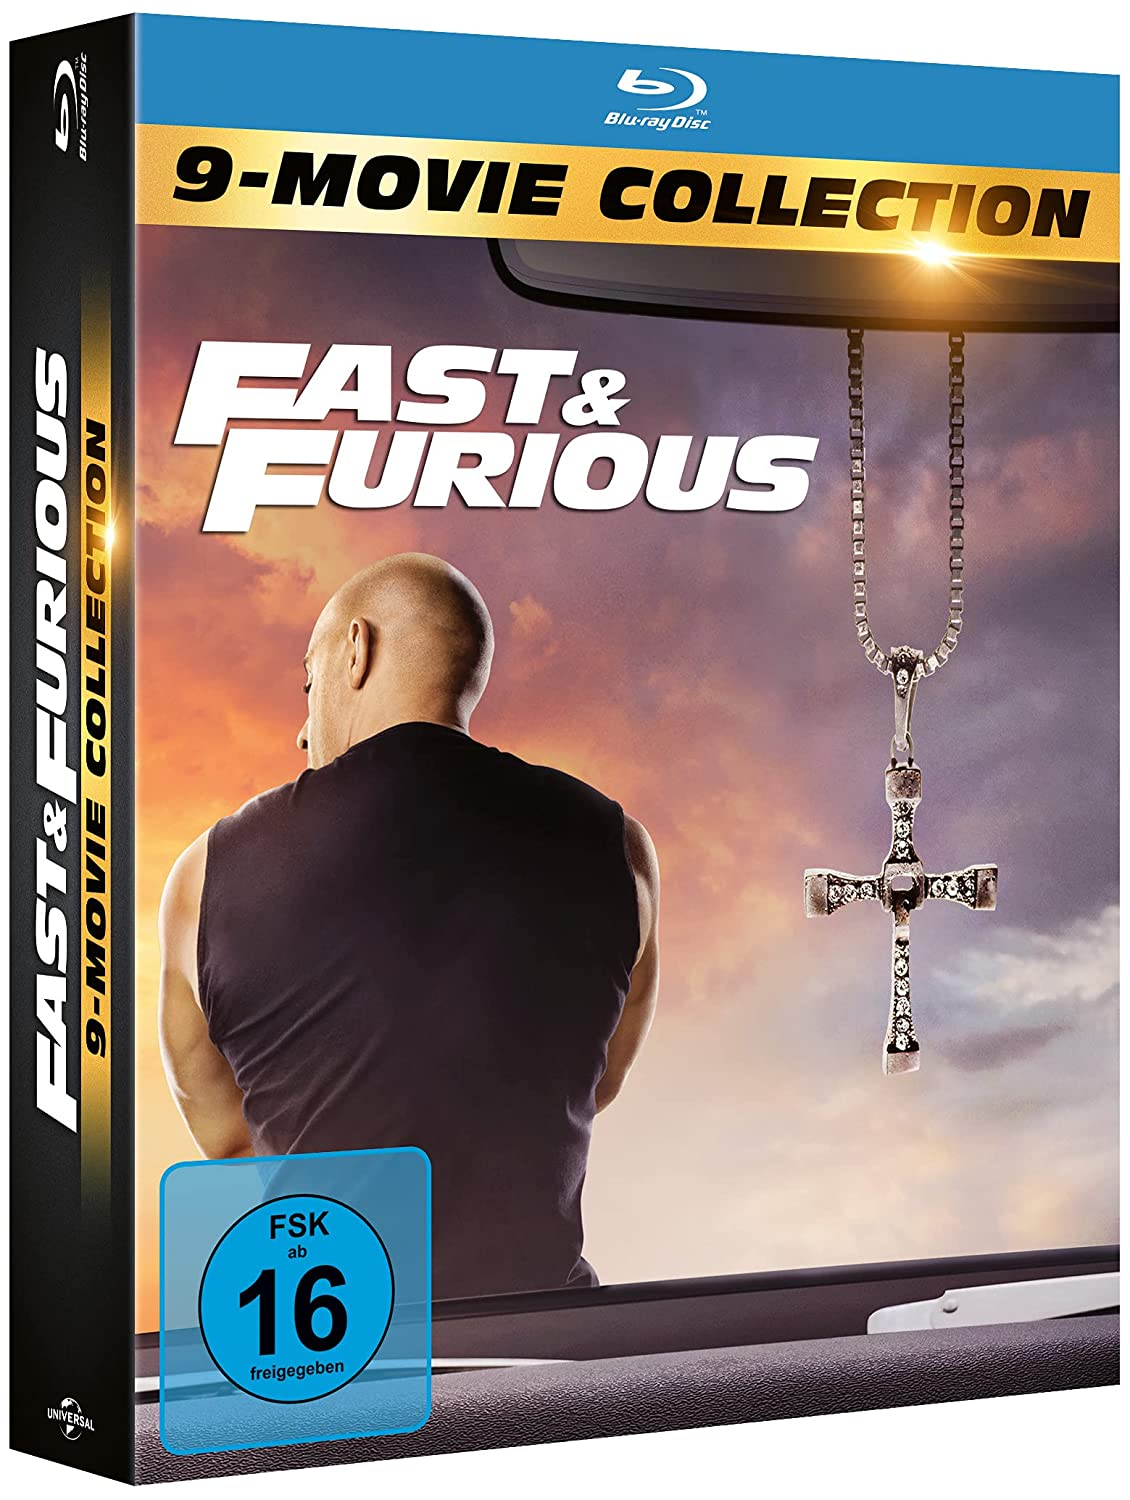 Fast & Furious 9 Movie Collection - Blu-ray